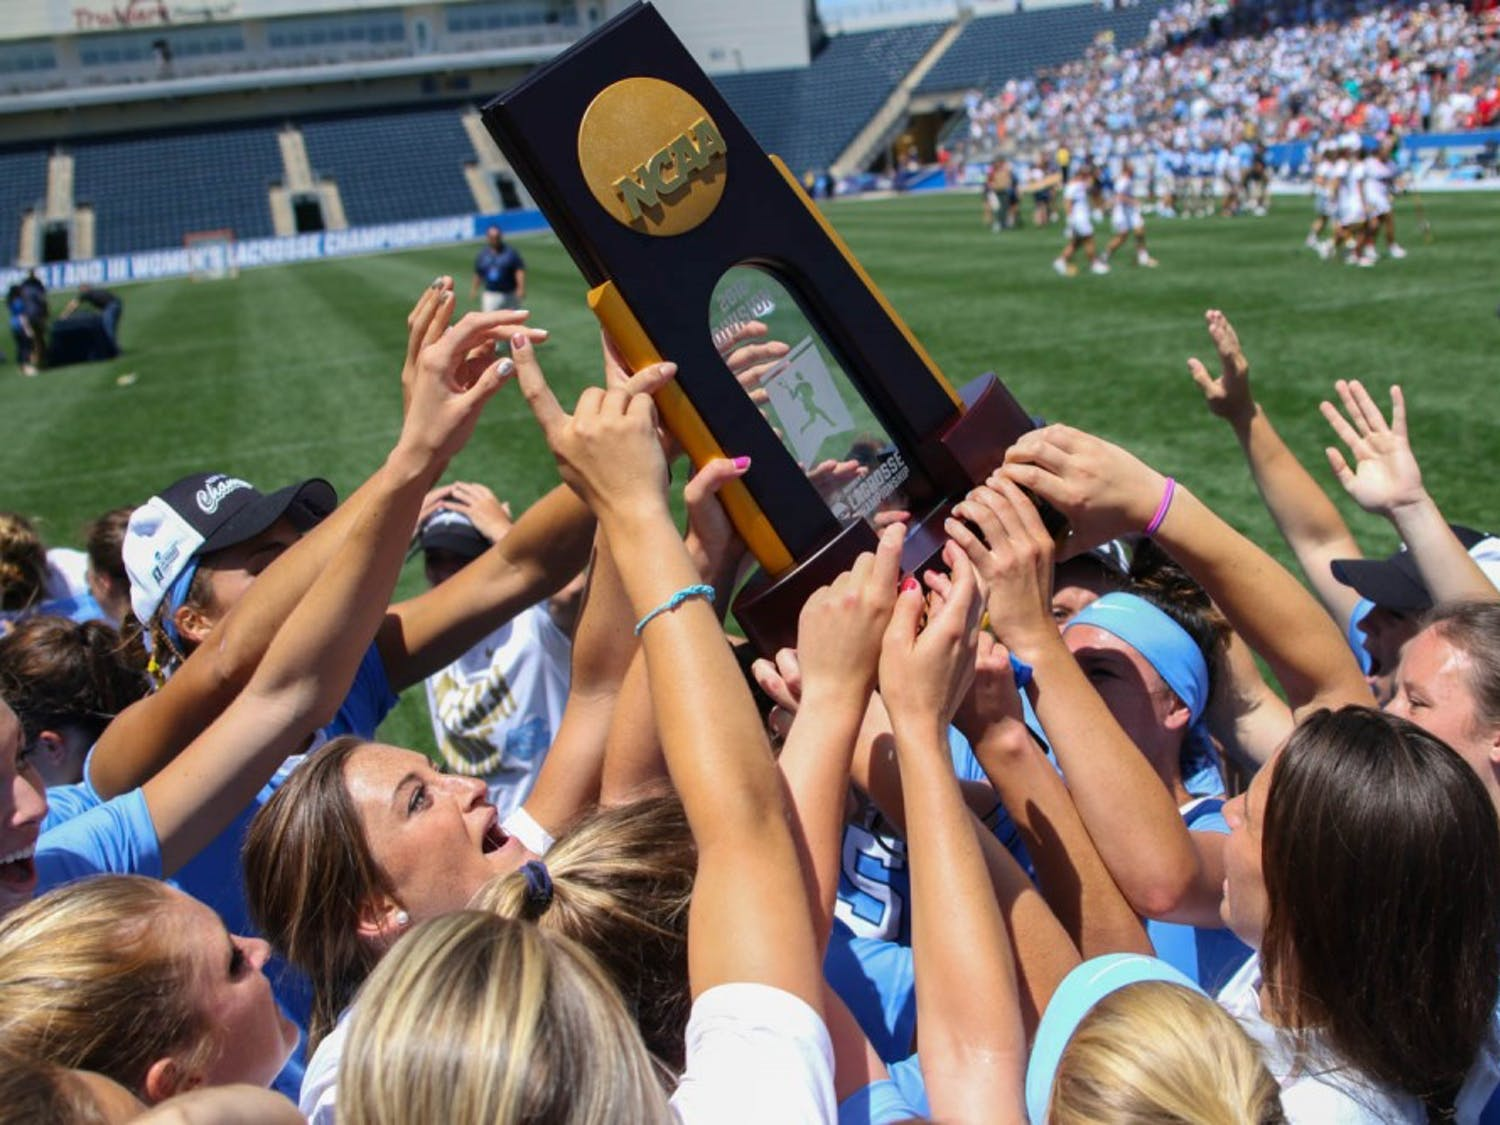 The North Carolina women's lacrosse team defeated Maryland 13-7 to capture the NCAA championship on Sunday at Talen Energy Stadium in Chester, PA.